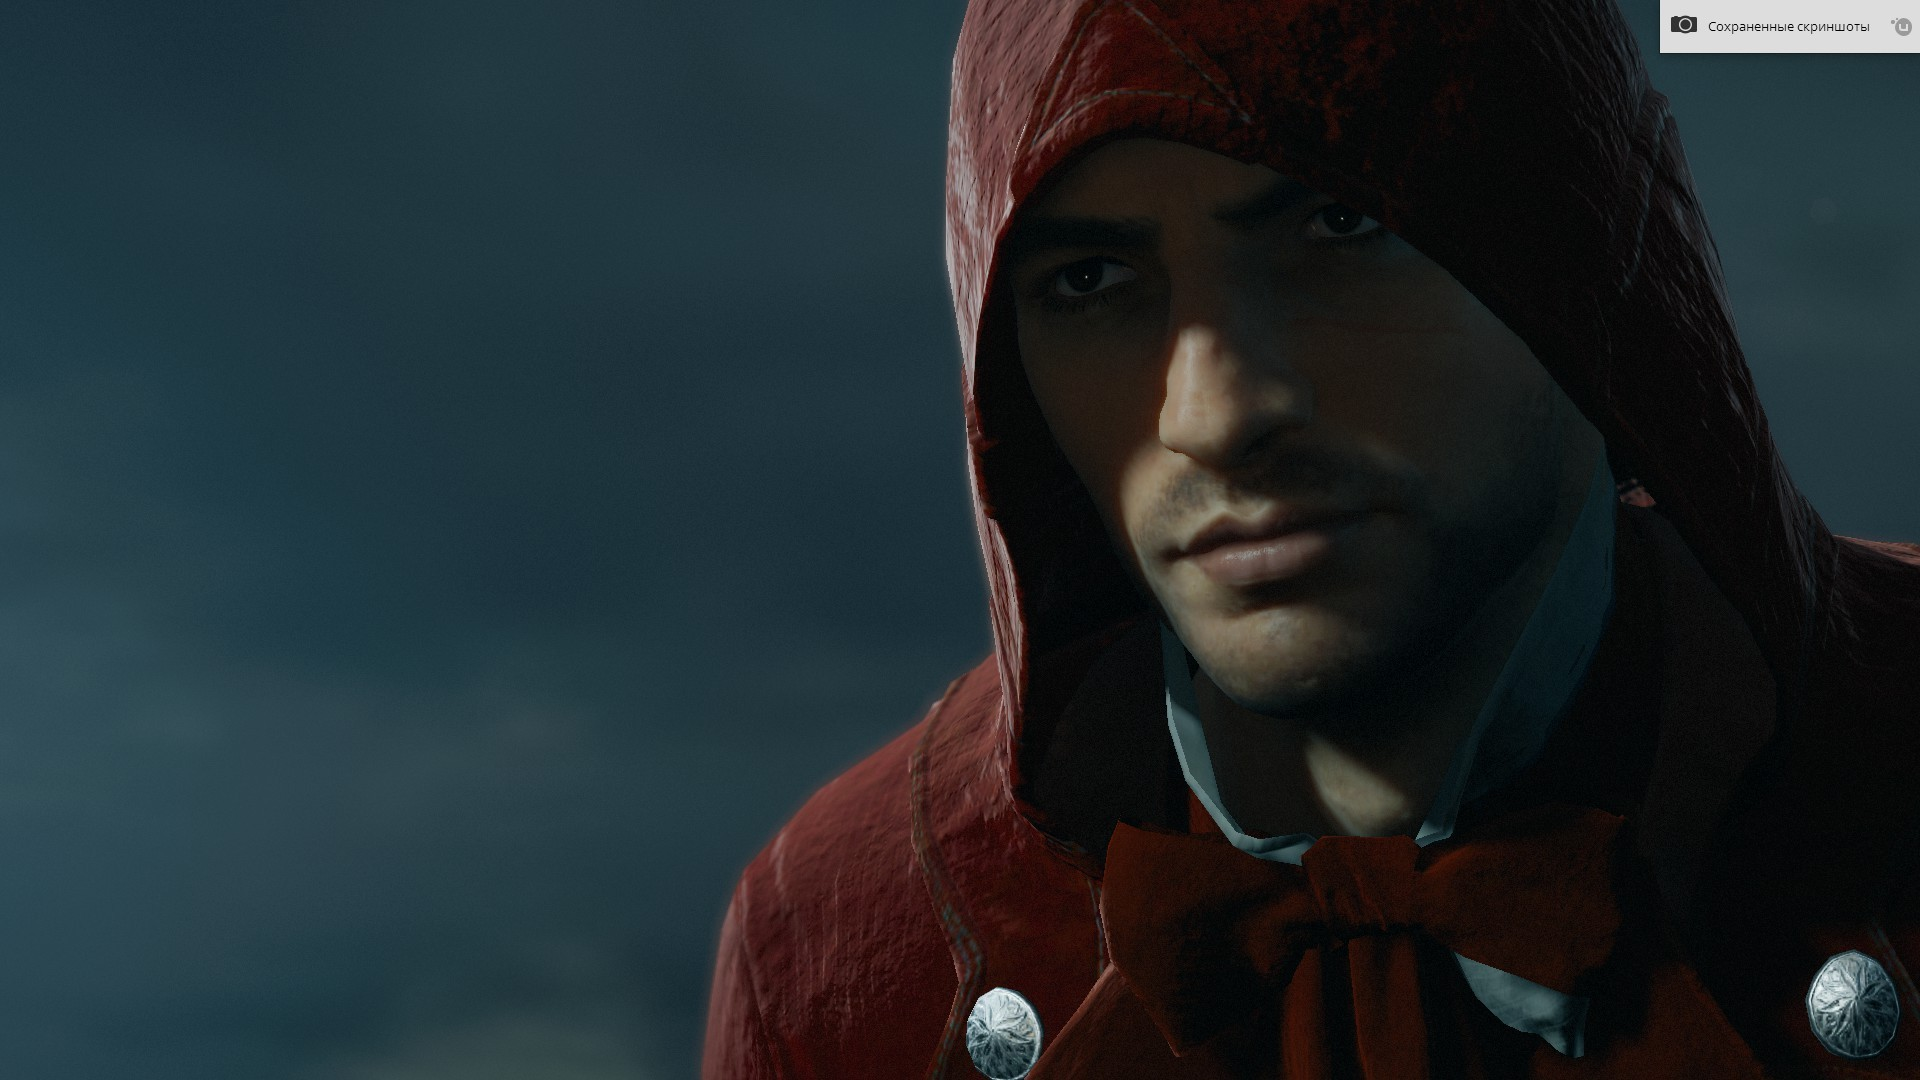 ac unity matchmaking Also consider the poor reception of the latest madden game, assassin's creed (both unity and rogue), battlefield, etc these are all good examples of publishers profiteering off of the loyal gamers.